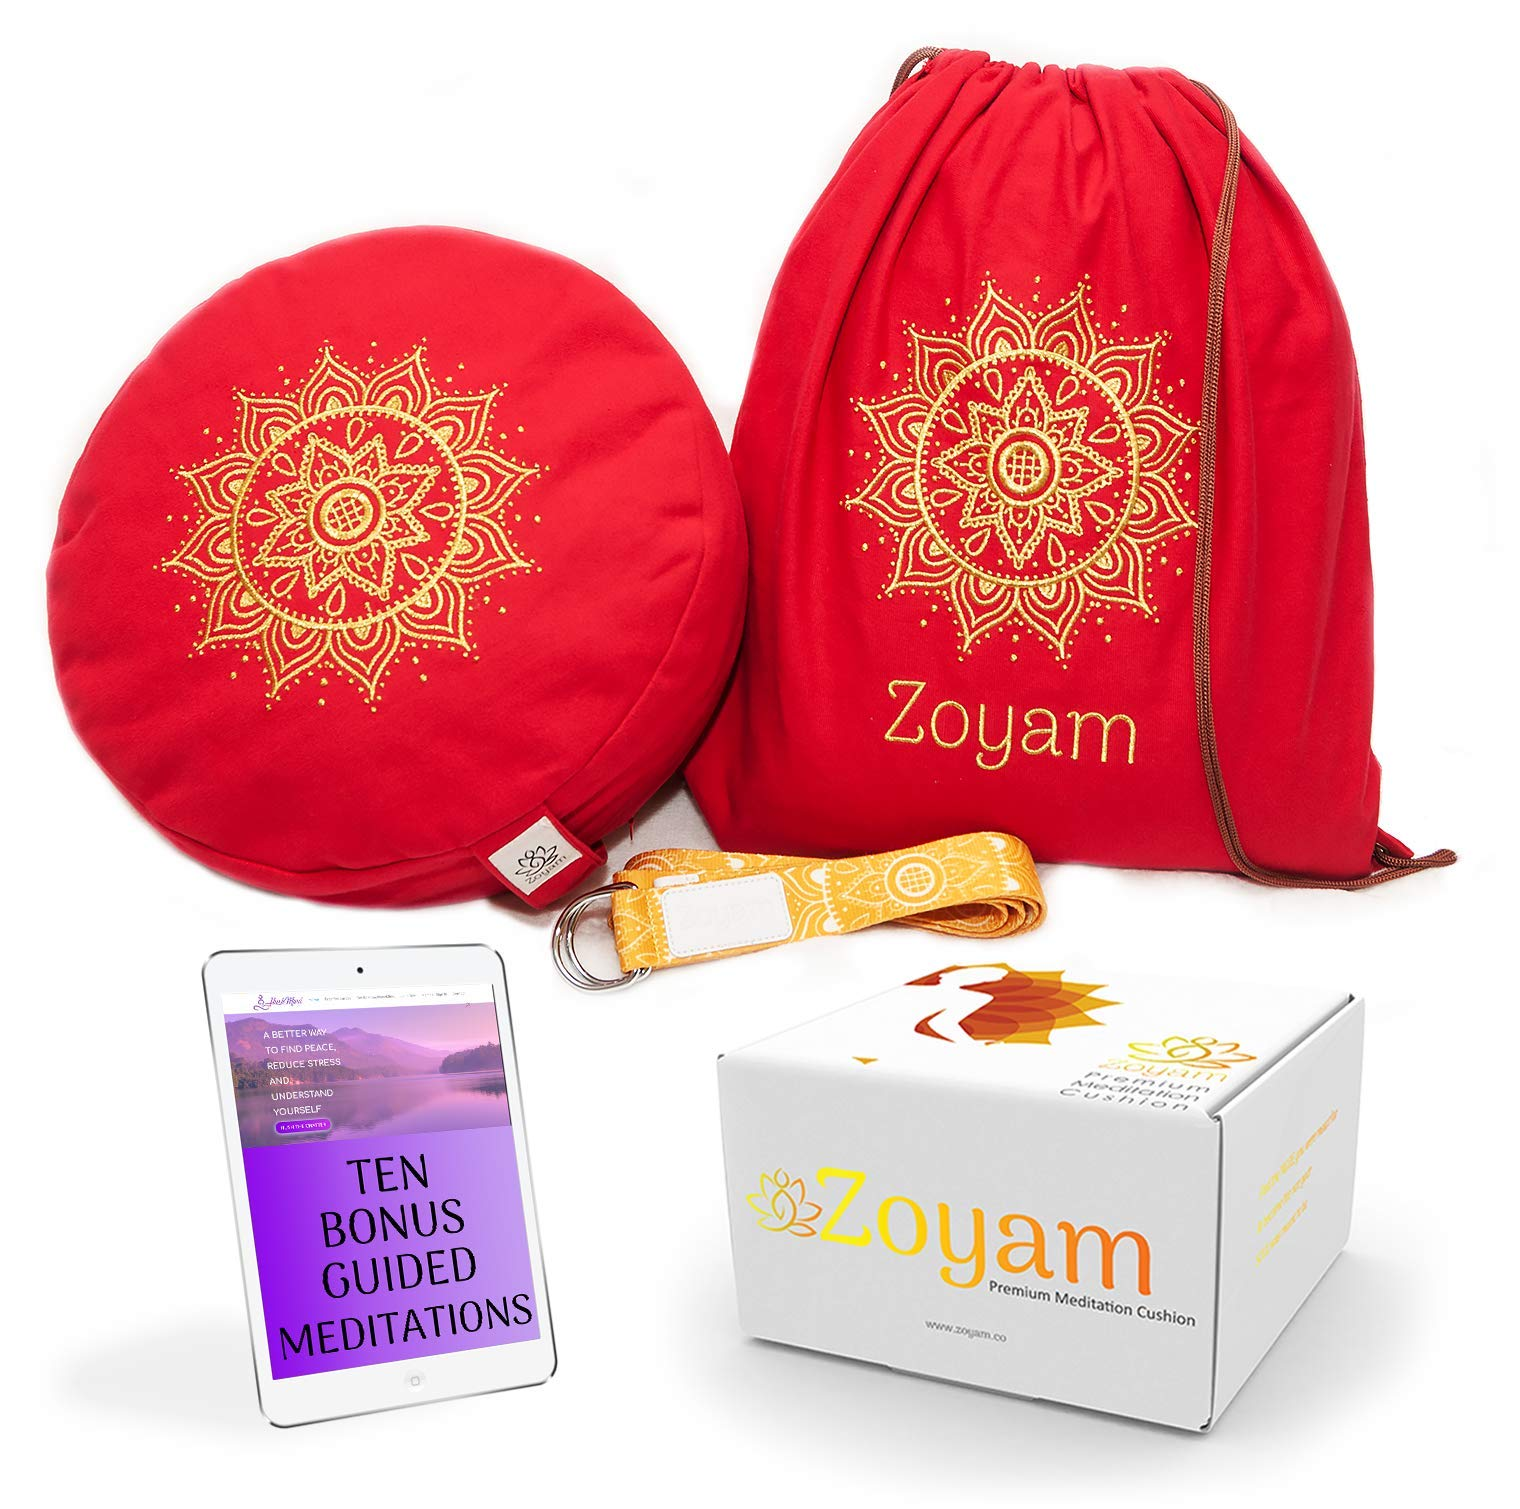 Zoyam Premium Meditation Cushion | Well made meditation pillows for sitting on floor | Easy to clean zafu pillow with Carry Bag Yoga Strap and Bonus Guided Meditations